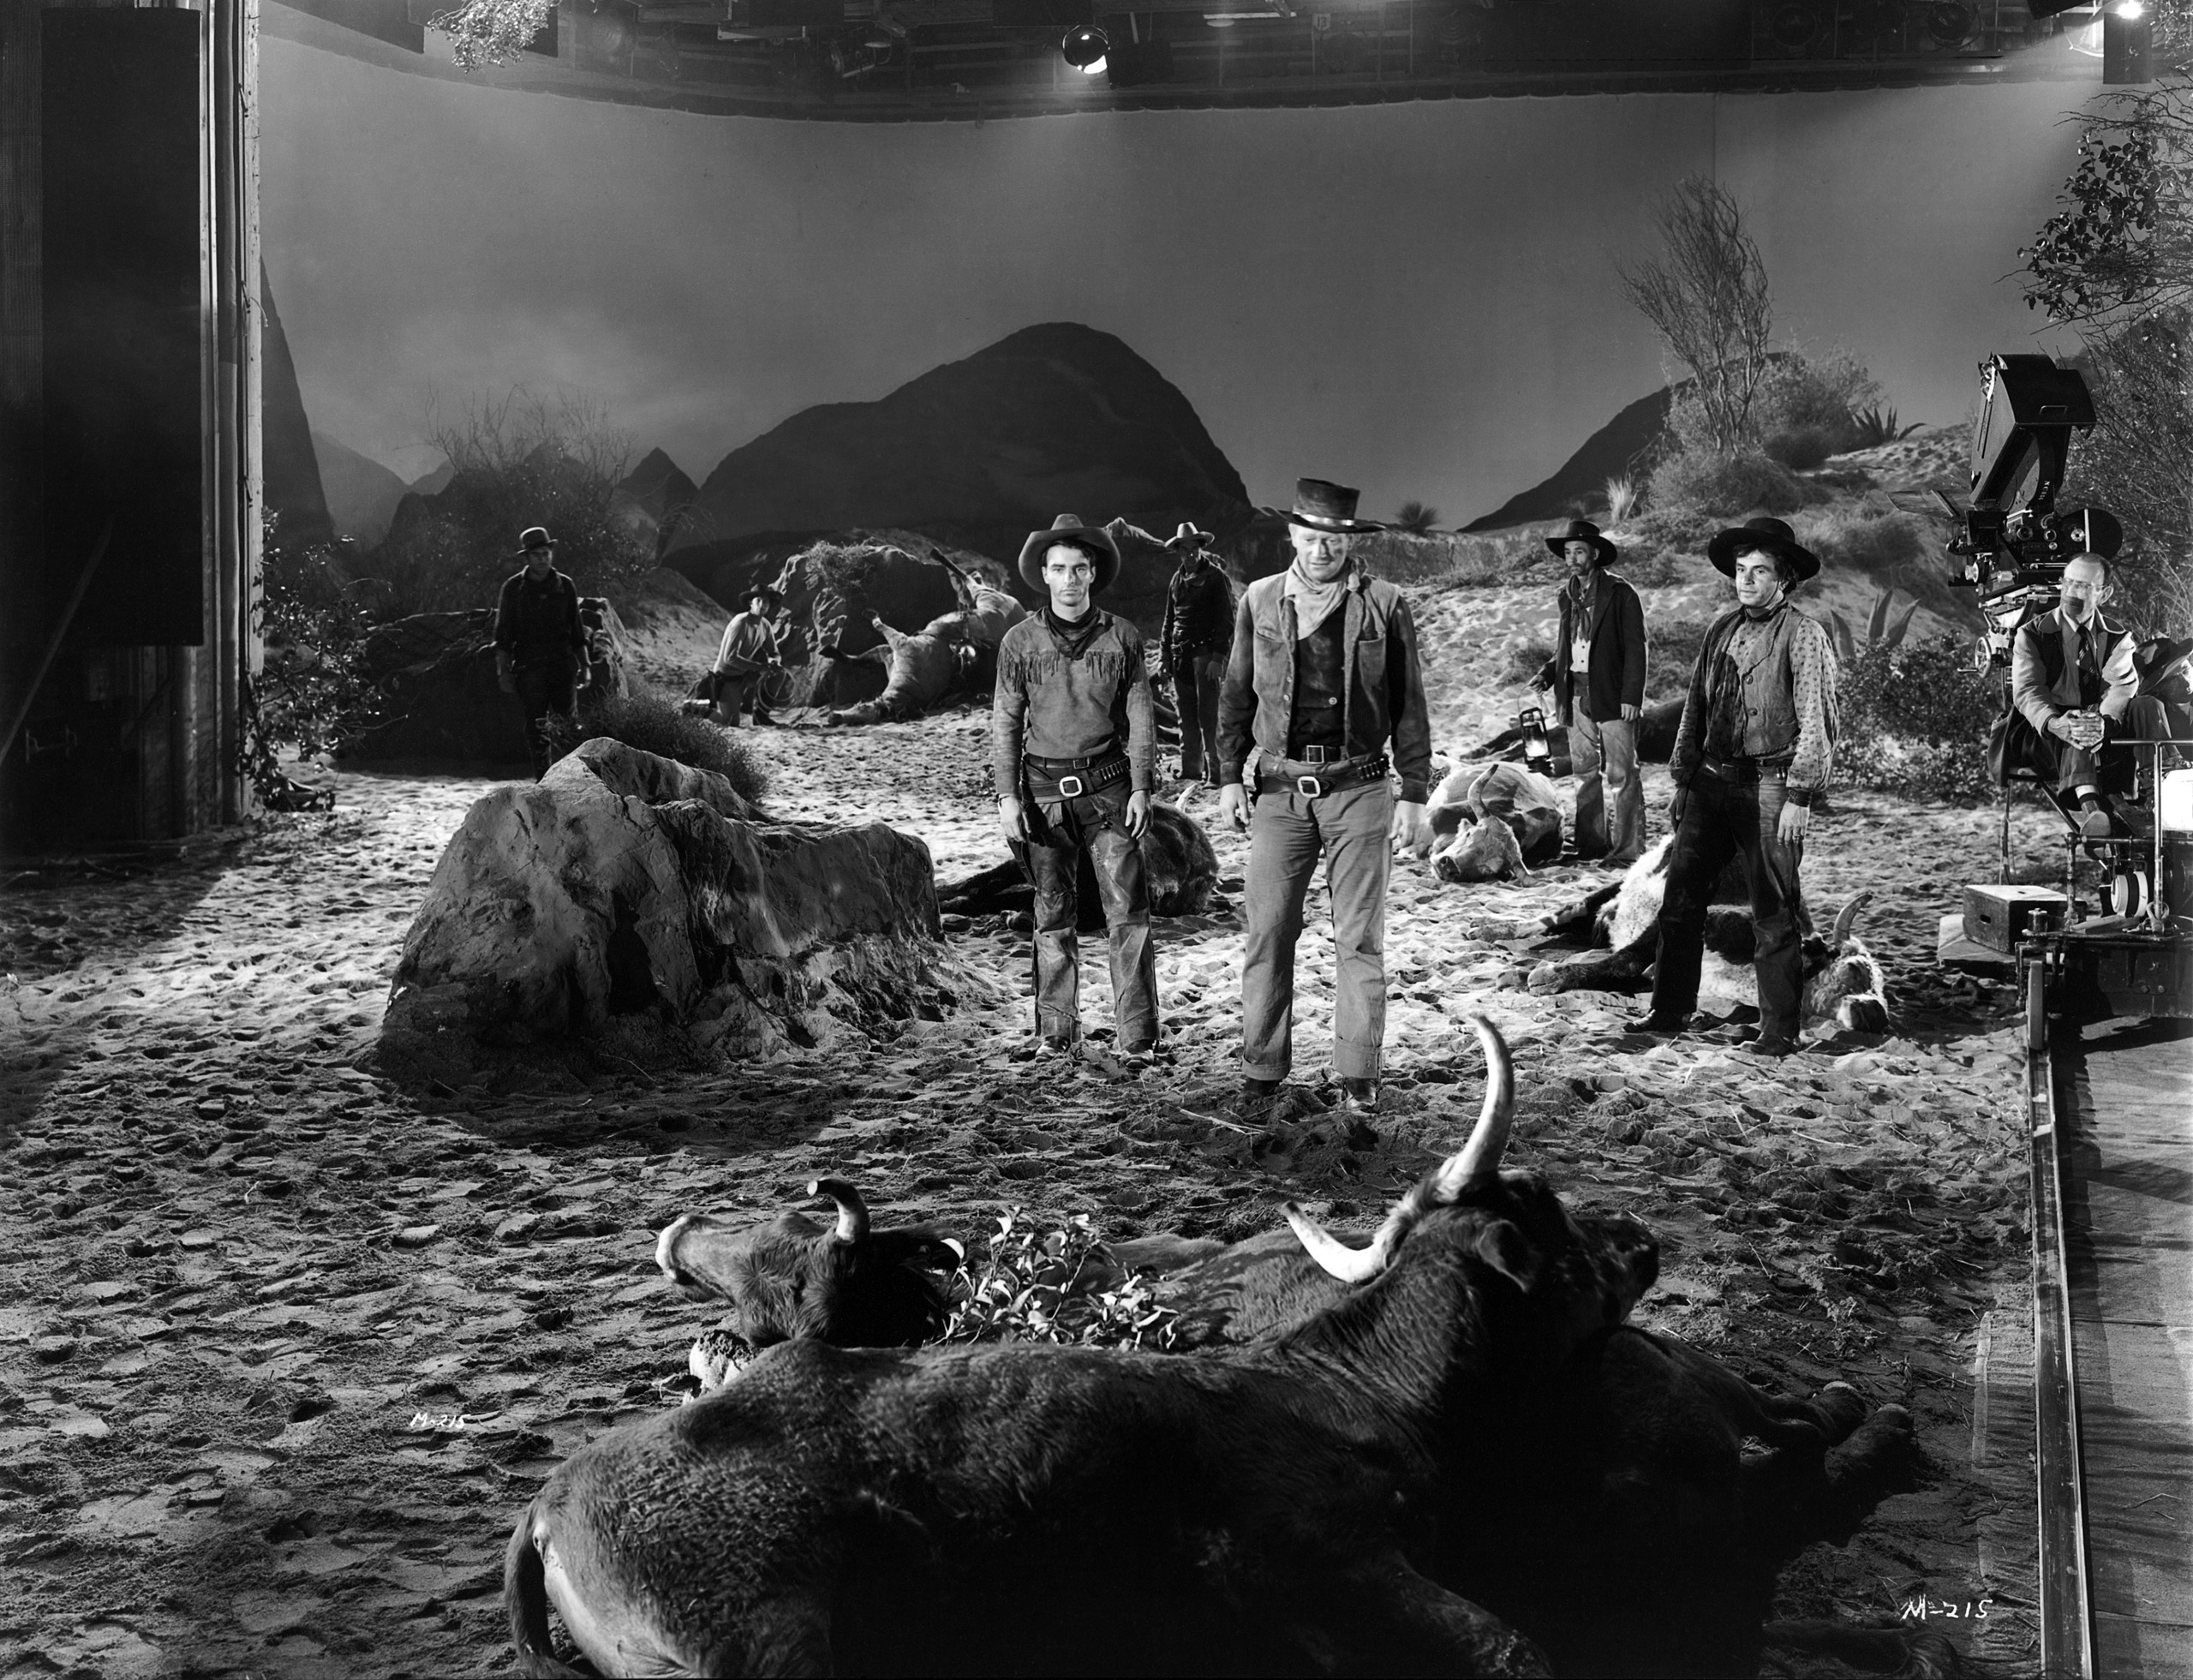 Montgomery Clift and John Wayne on the studio set of the western 'Red River', 1948.